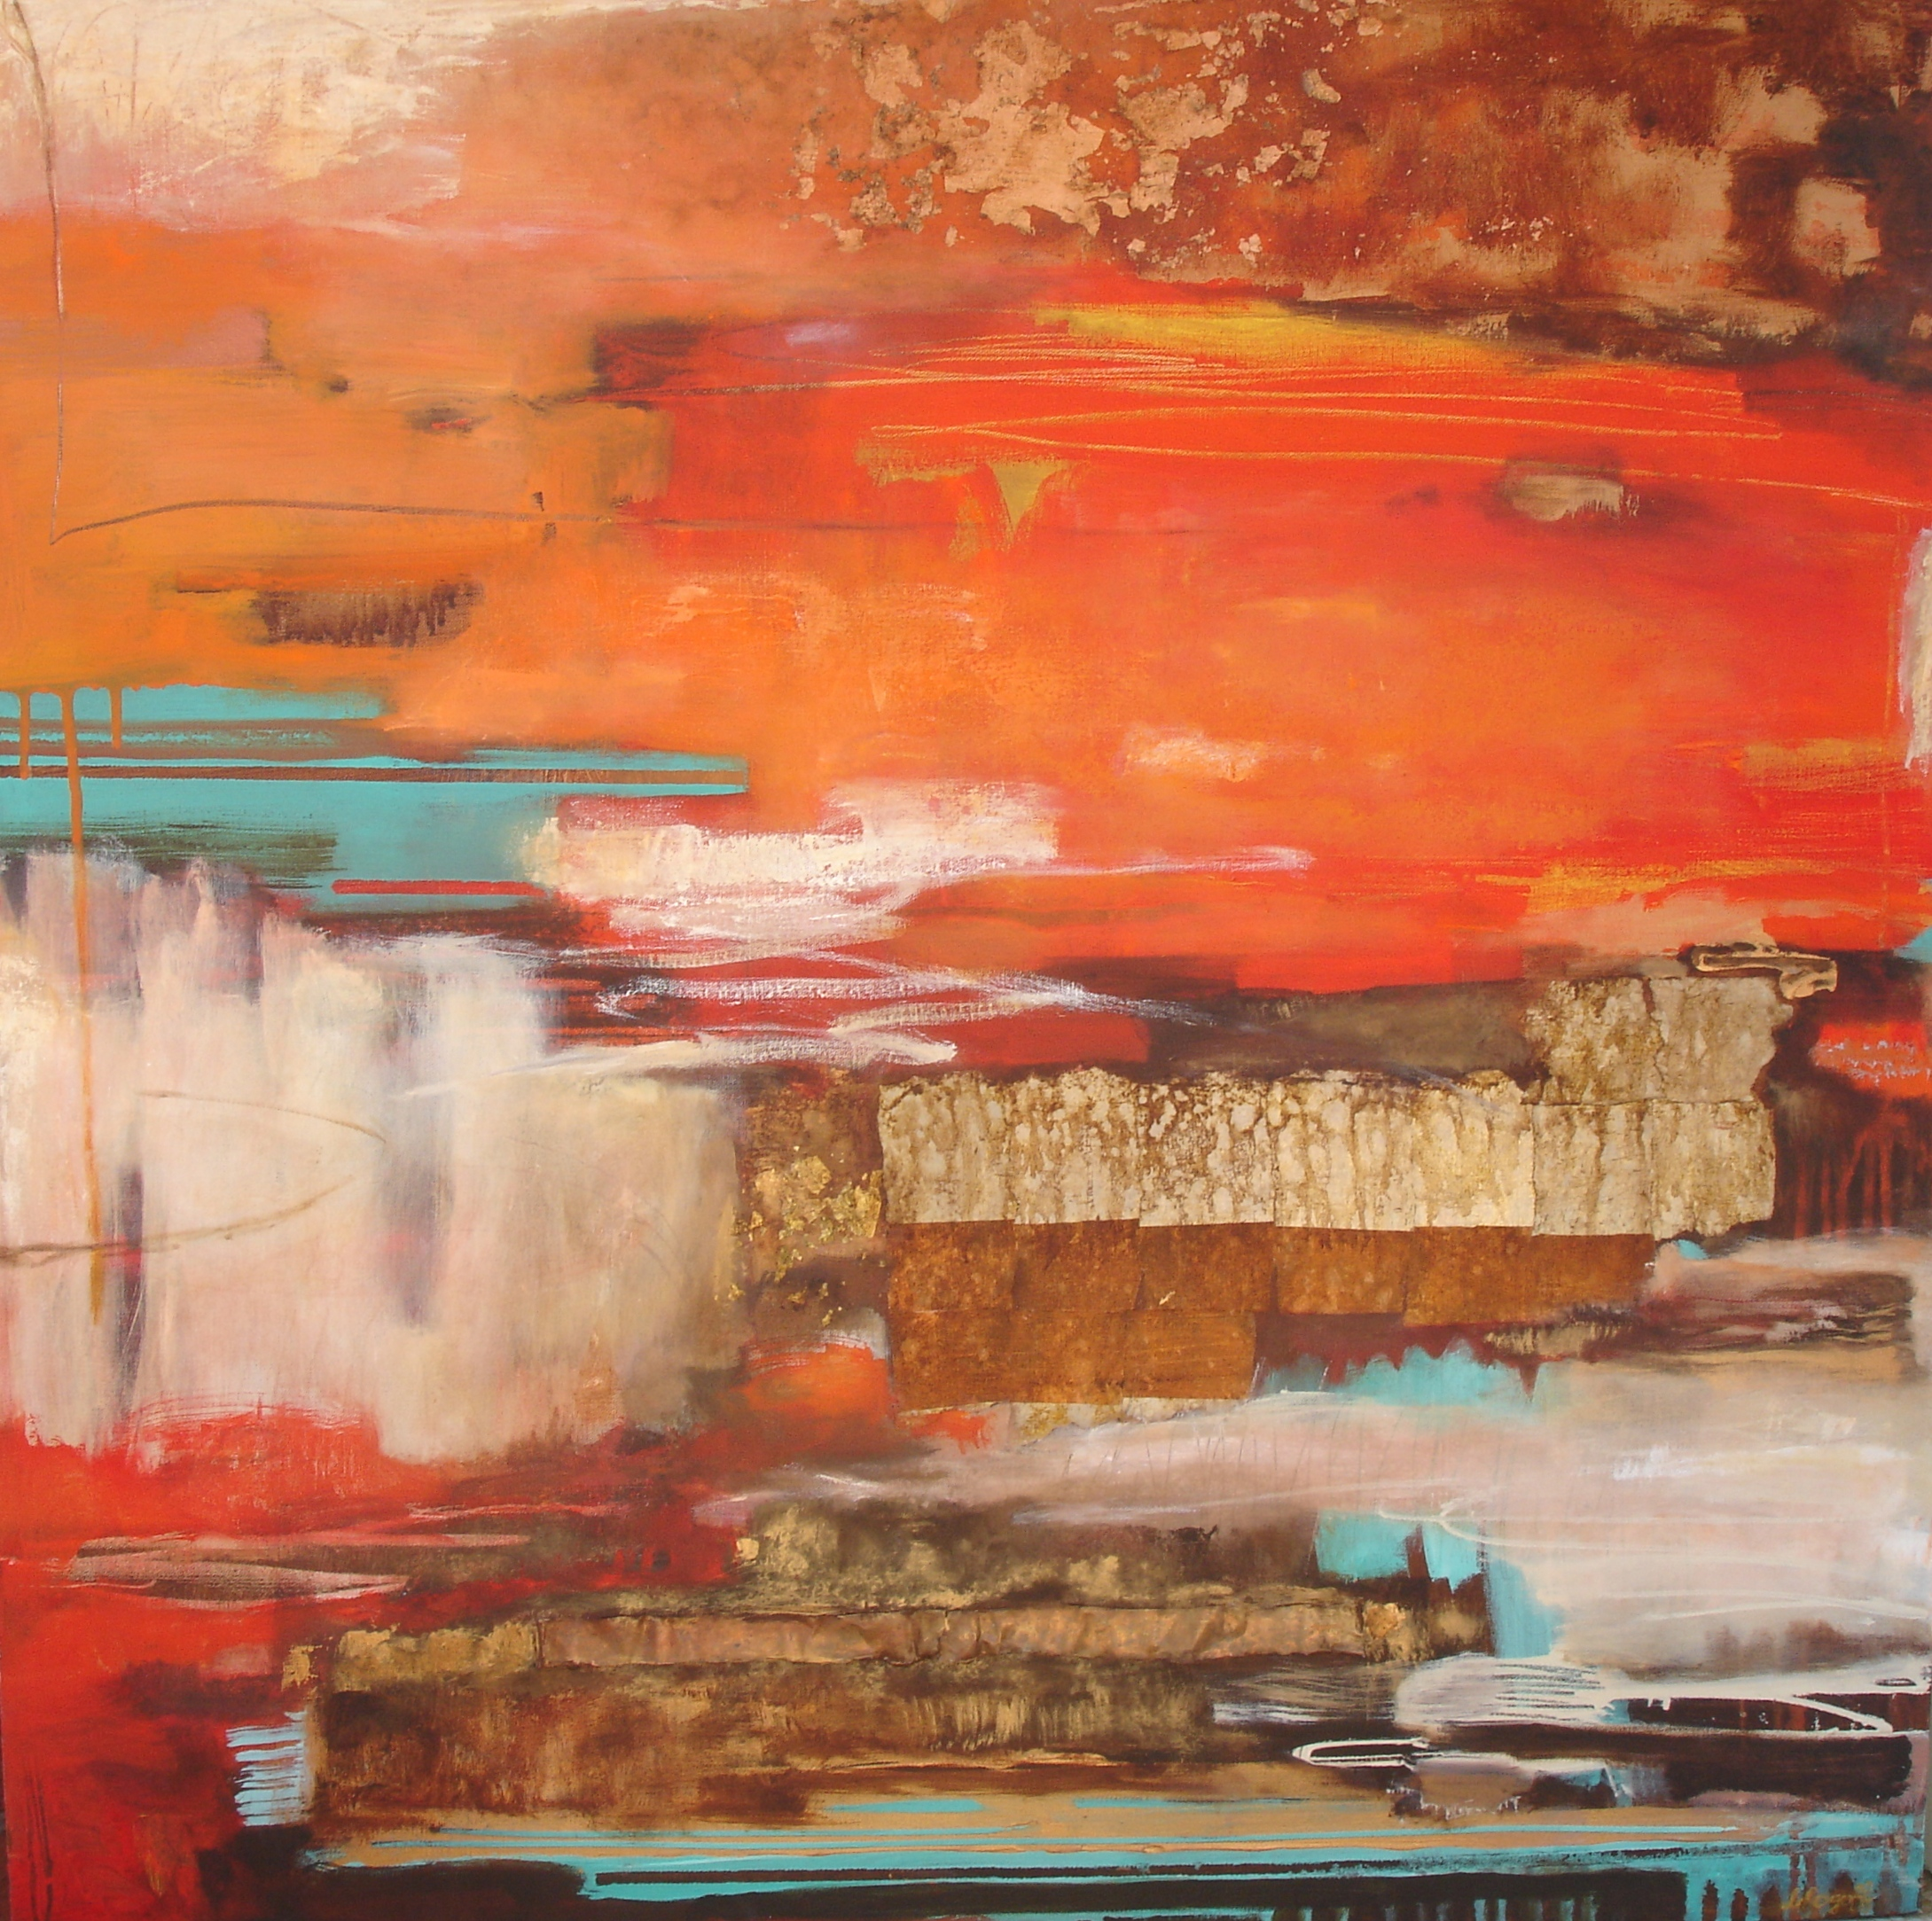 Red Earth, 92 x 92 cm